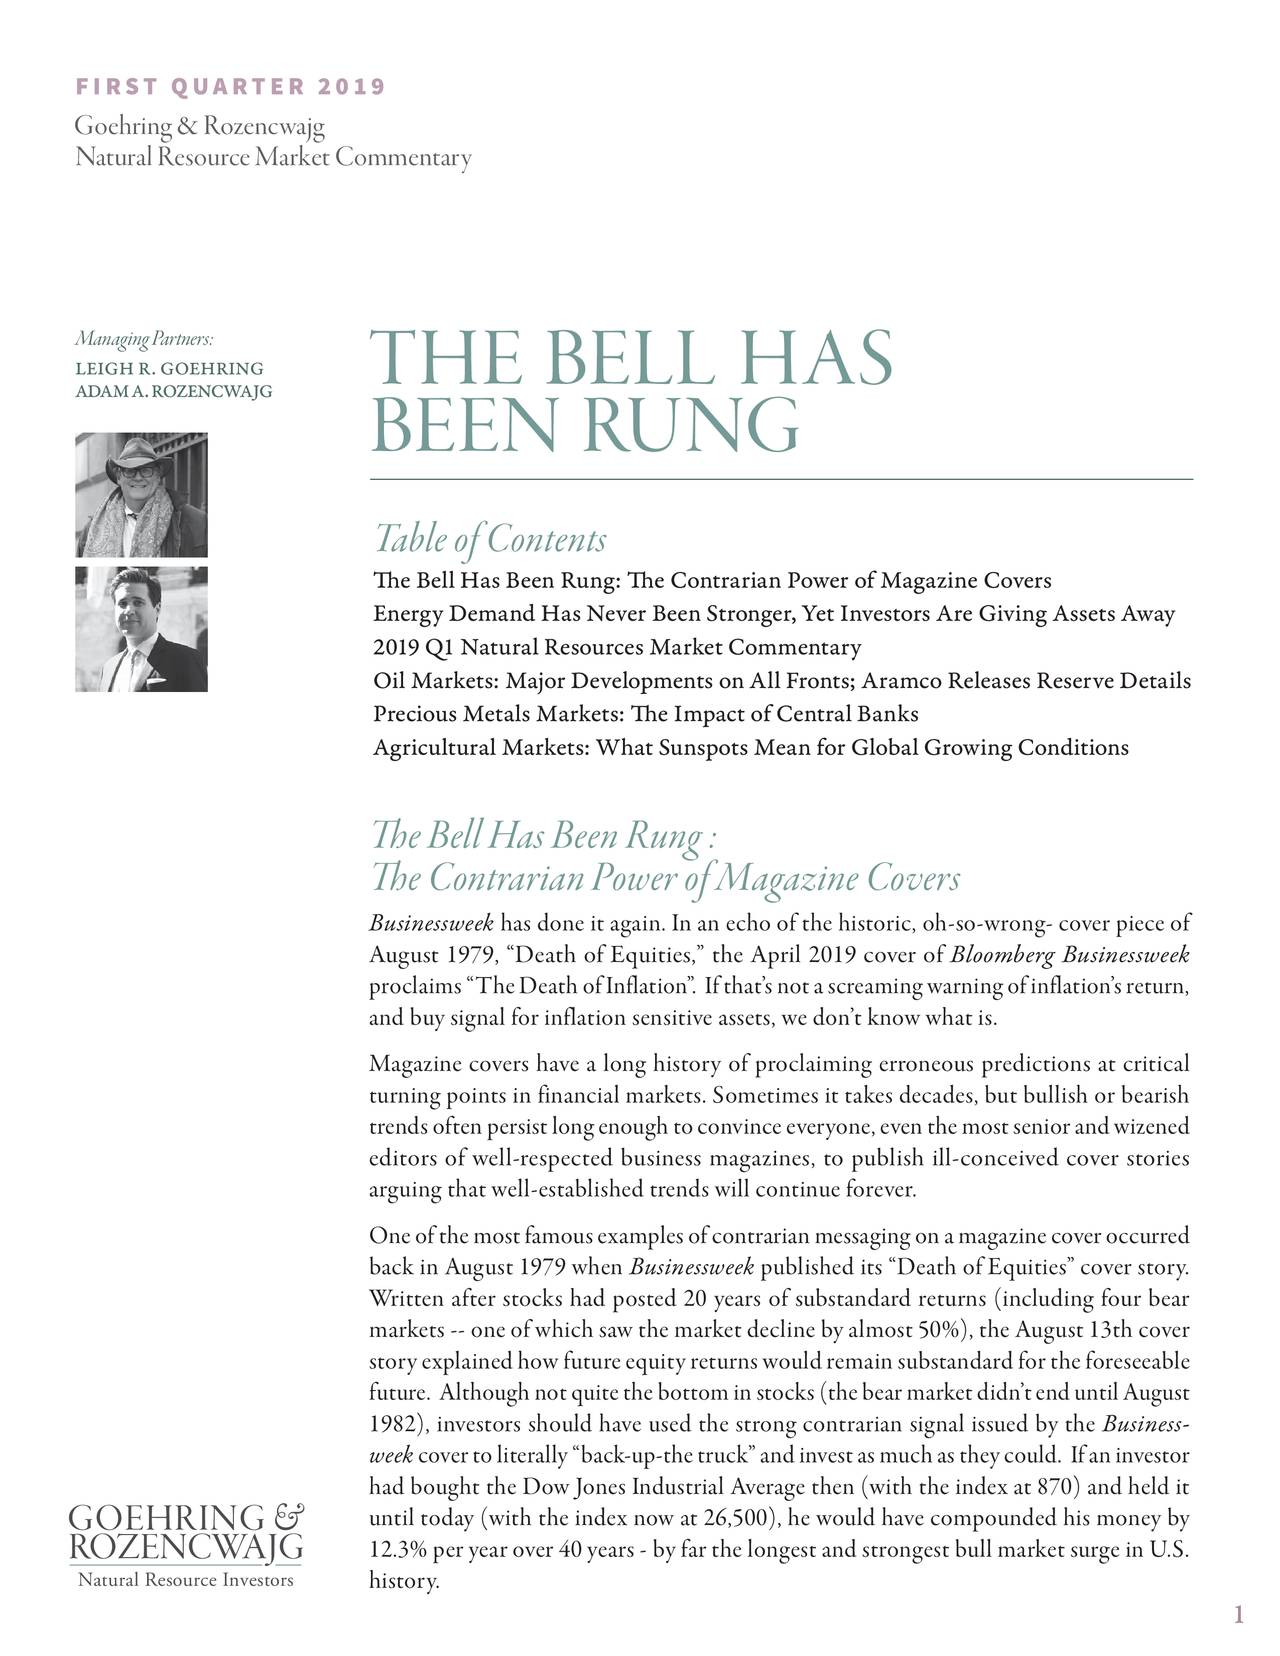 Goehring & Rozencwajg Natural Resource Market Commentary Q1 2019: The Bell Has Been Rung